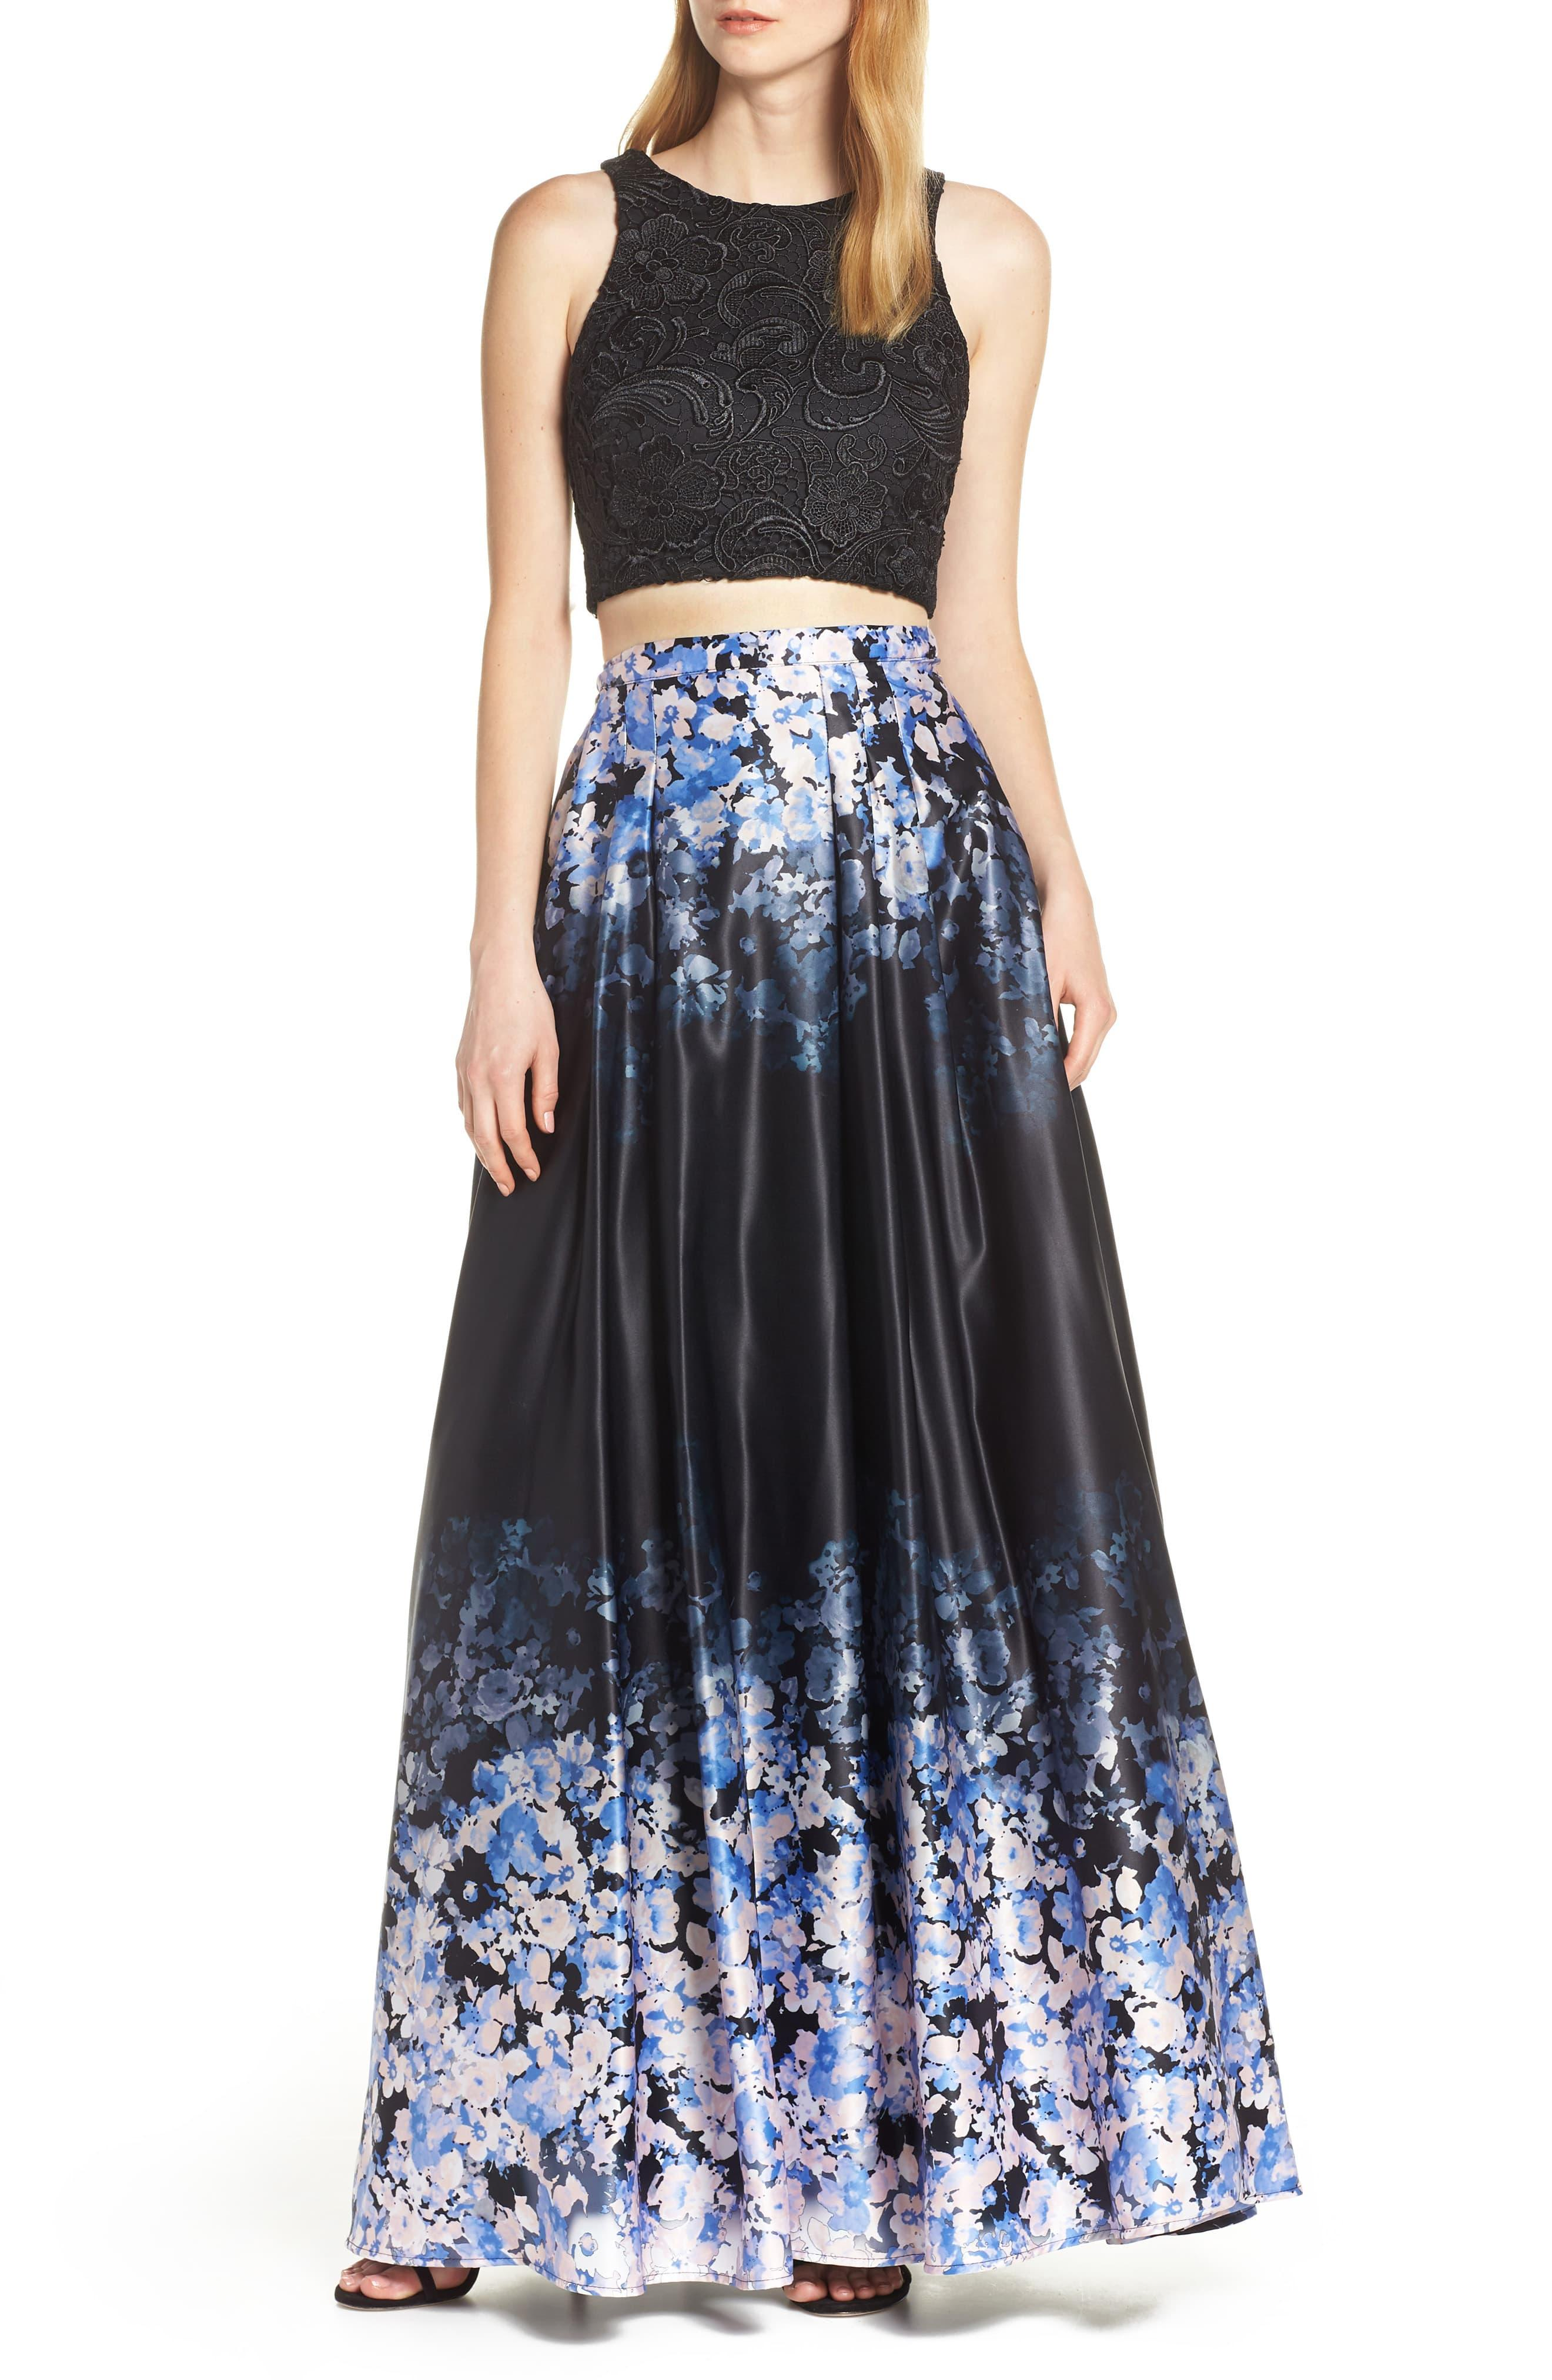 bb597334769ef Sequin Hearts Satin & Lace Two-piece Evening Dress in Blue - Lyst